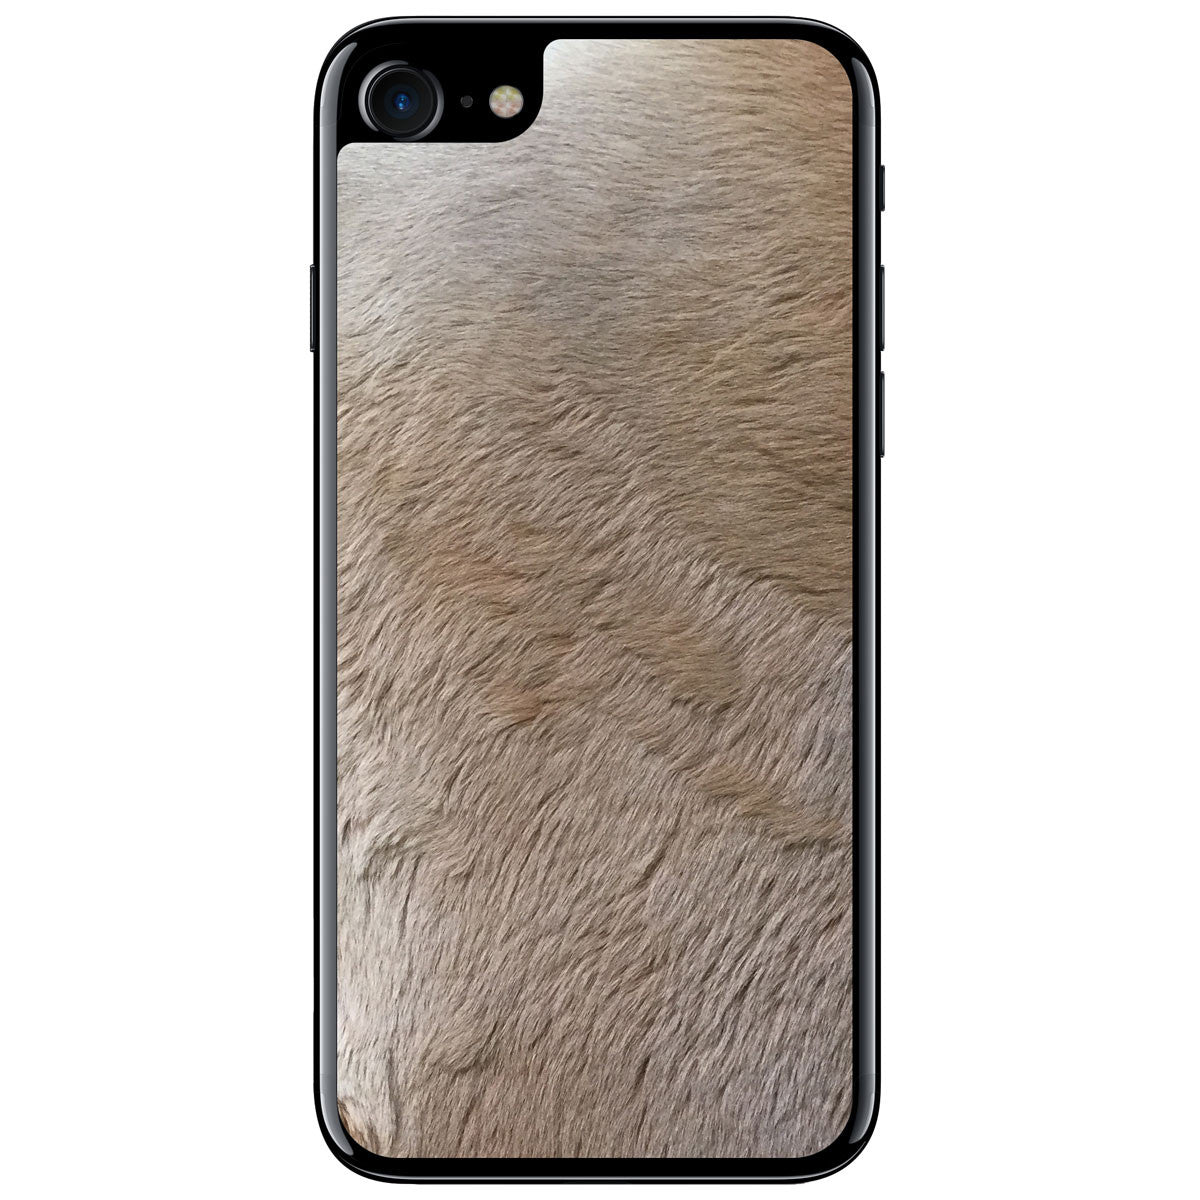 Kangaroo iPhone 7 Leather Skin